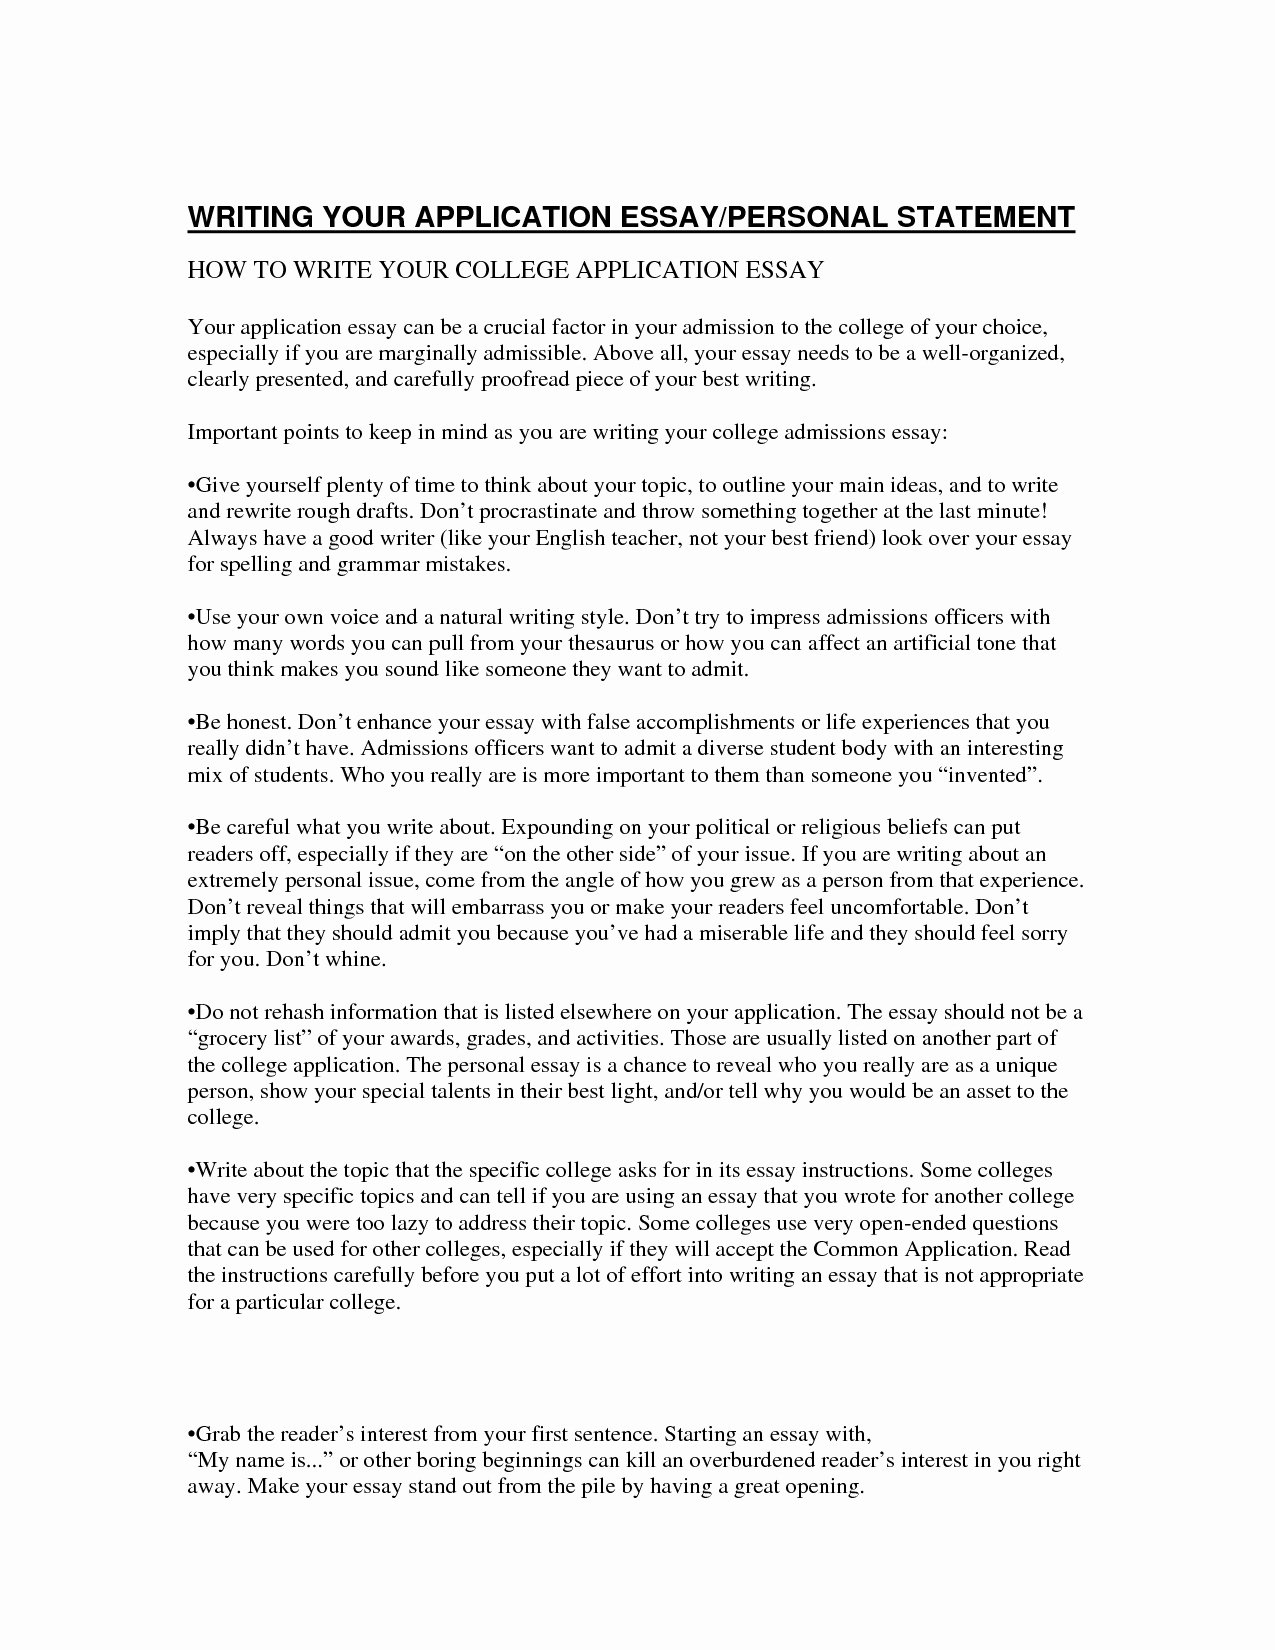 Scholarships Essays Examples About Yourself Best Of Personal Essay Examples for College Admission